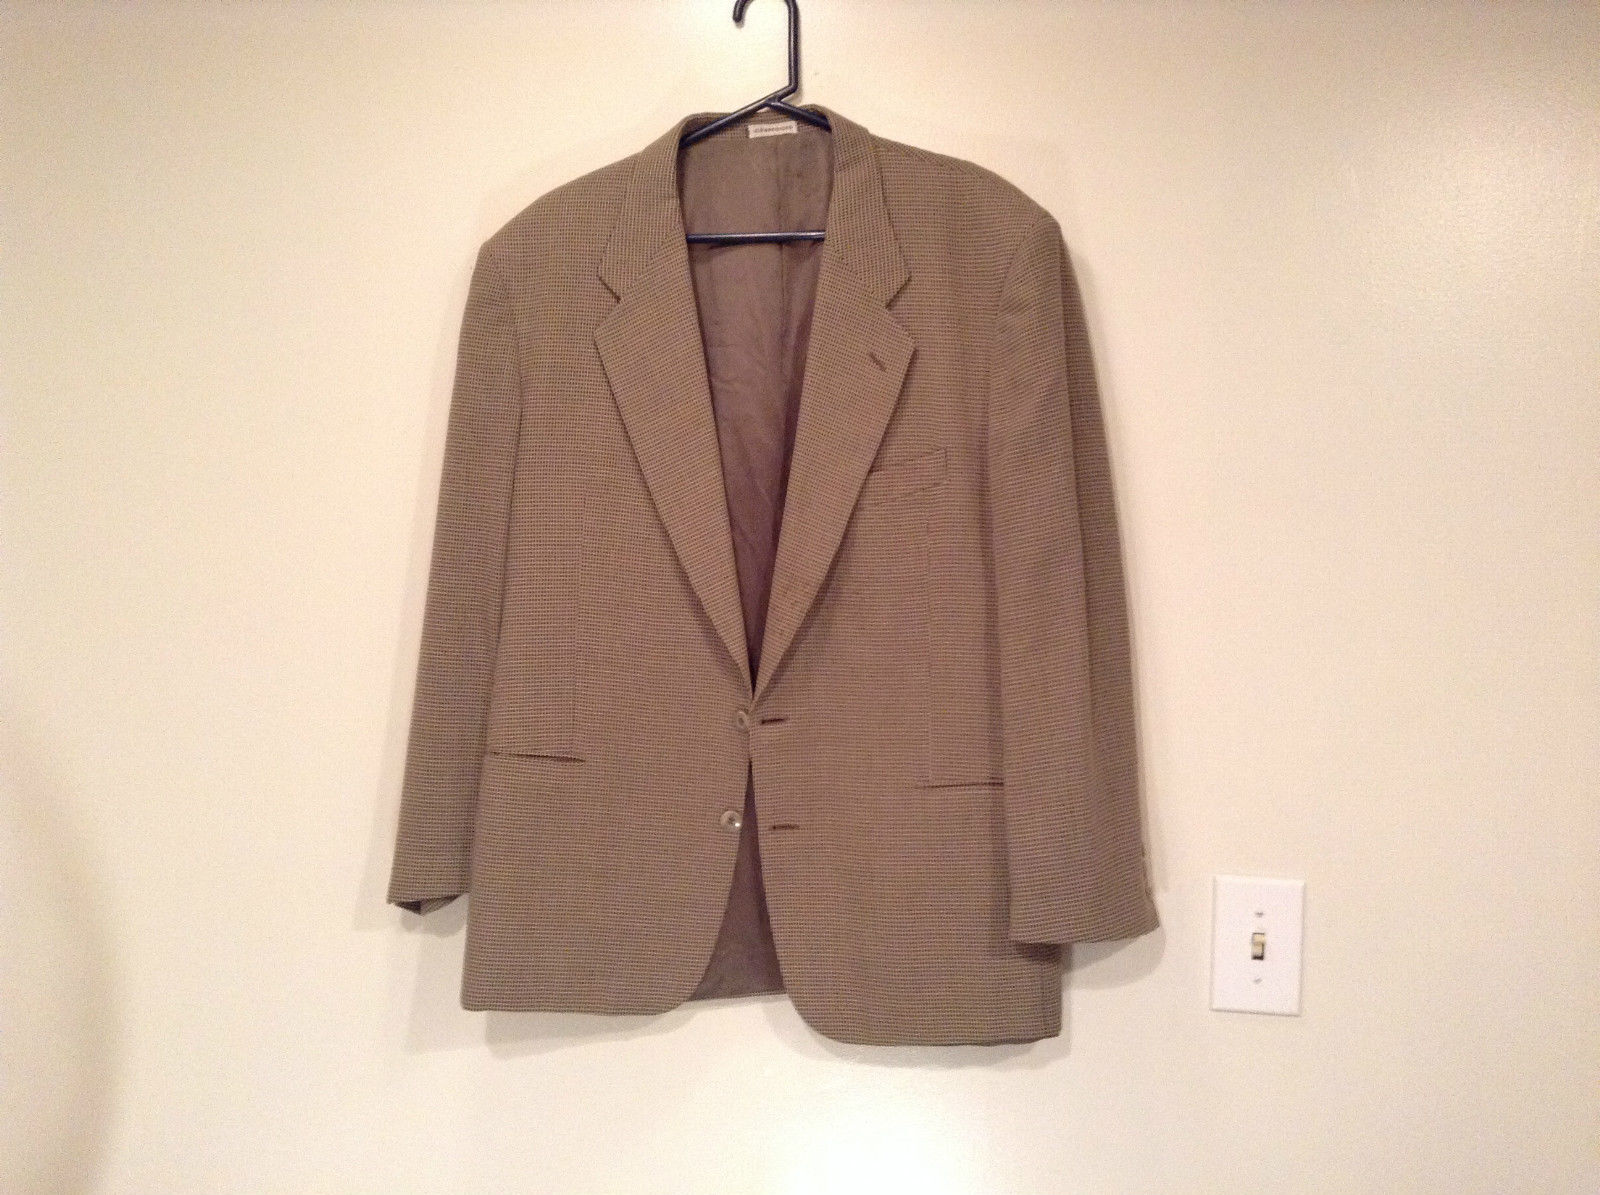 Saks Fifth Avenue Andrew Fezzo 100 Percent Wool Brown Plaid Suit Jacket Blazer